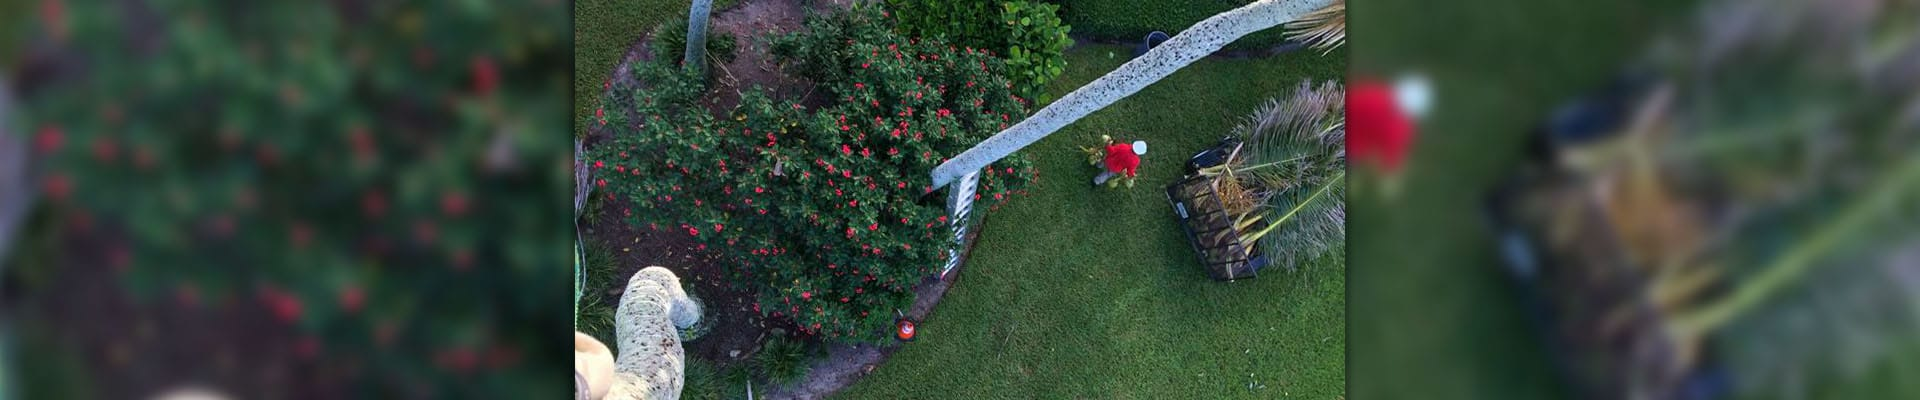 A overhead view of a Leo Garden Care employee walking across a lawn during a visit.